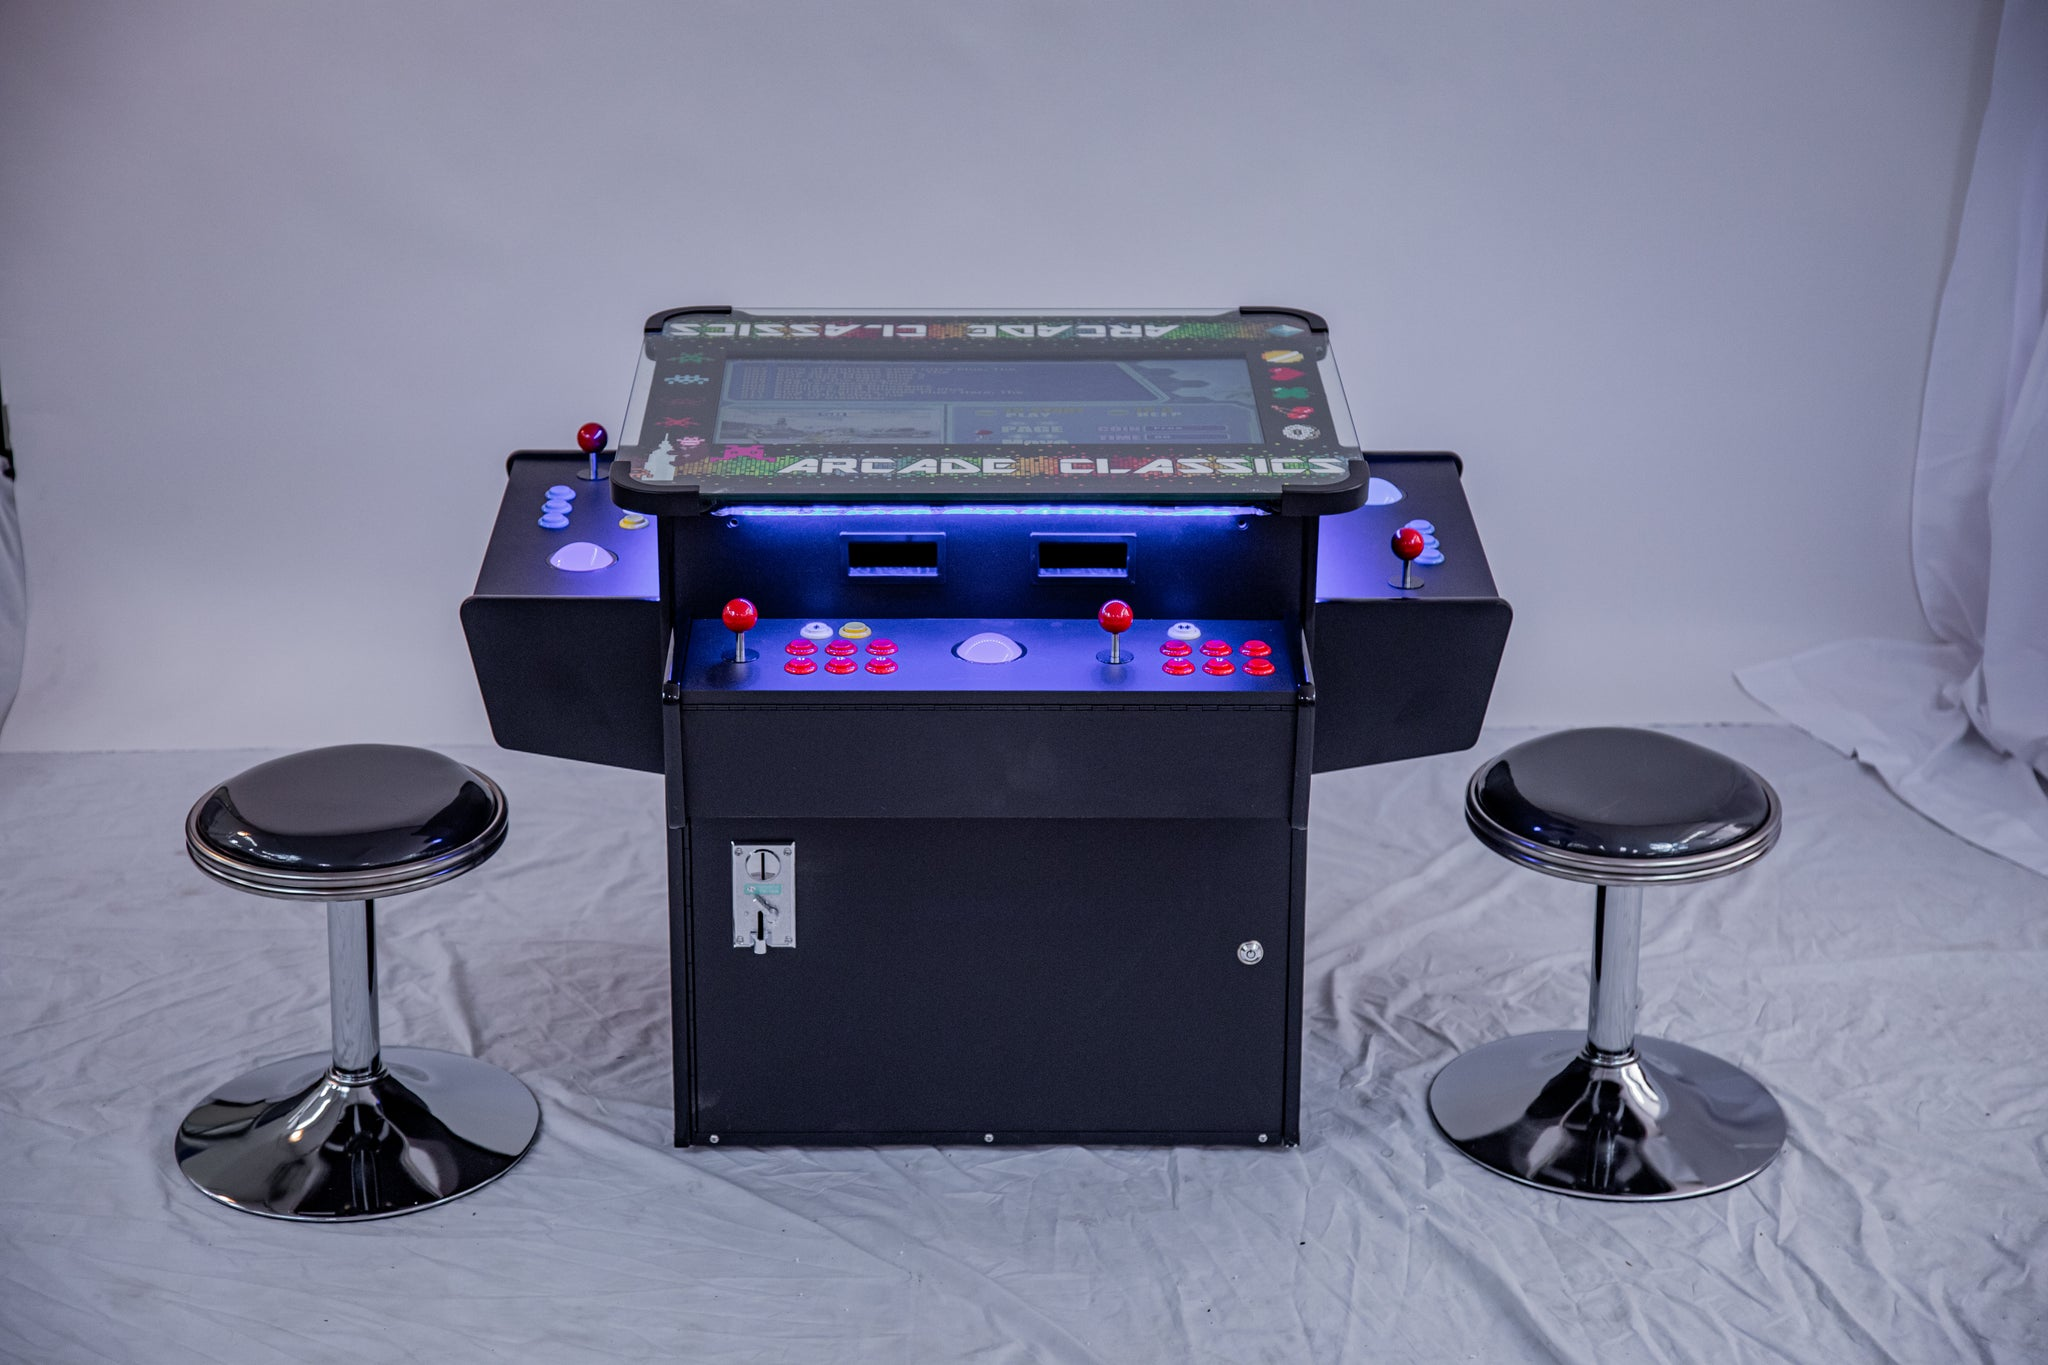 Full-sized, Three Sided, Cocktail Table Arcade Game With 3,016 Classic, Golden Age, and Midway Games